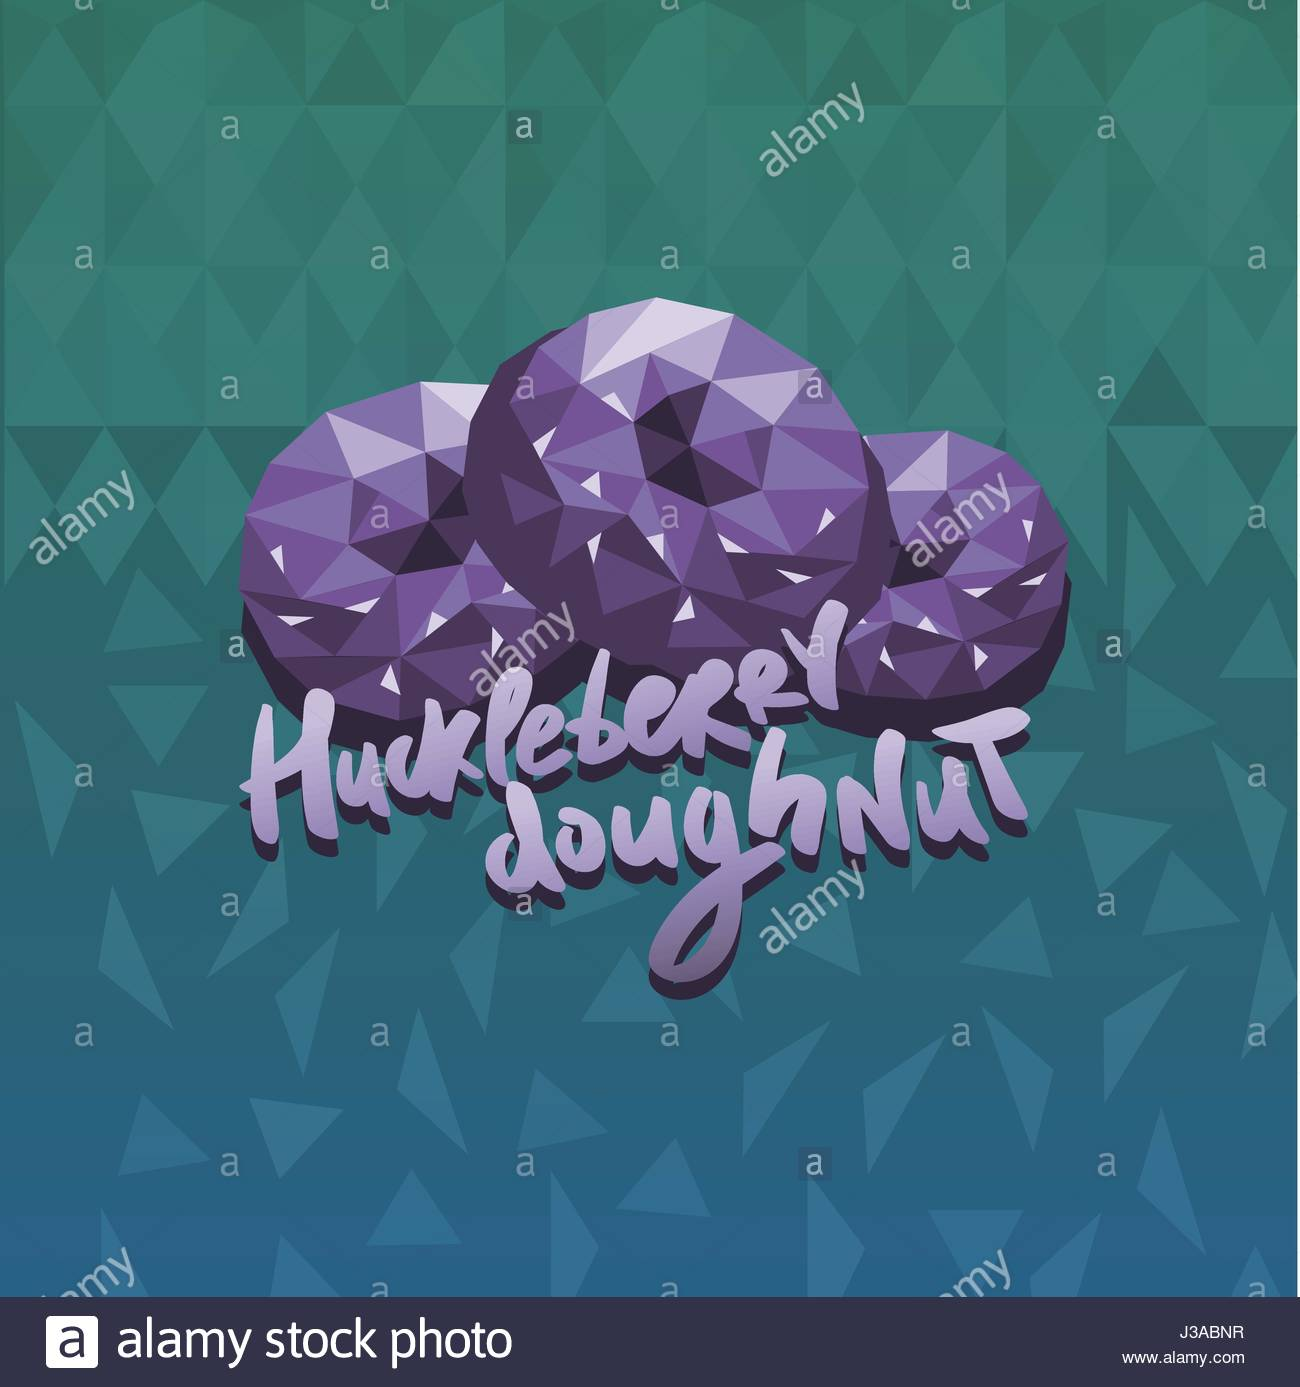 Vape Rampage huckleberry donuts flavor illustration in triangle abstract style - Stock Vector